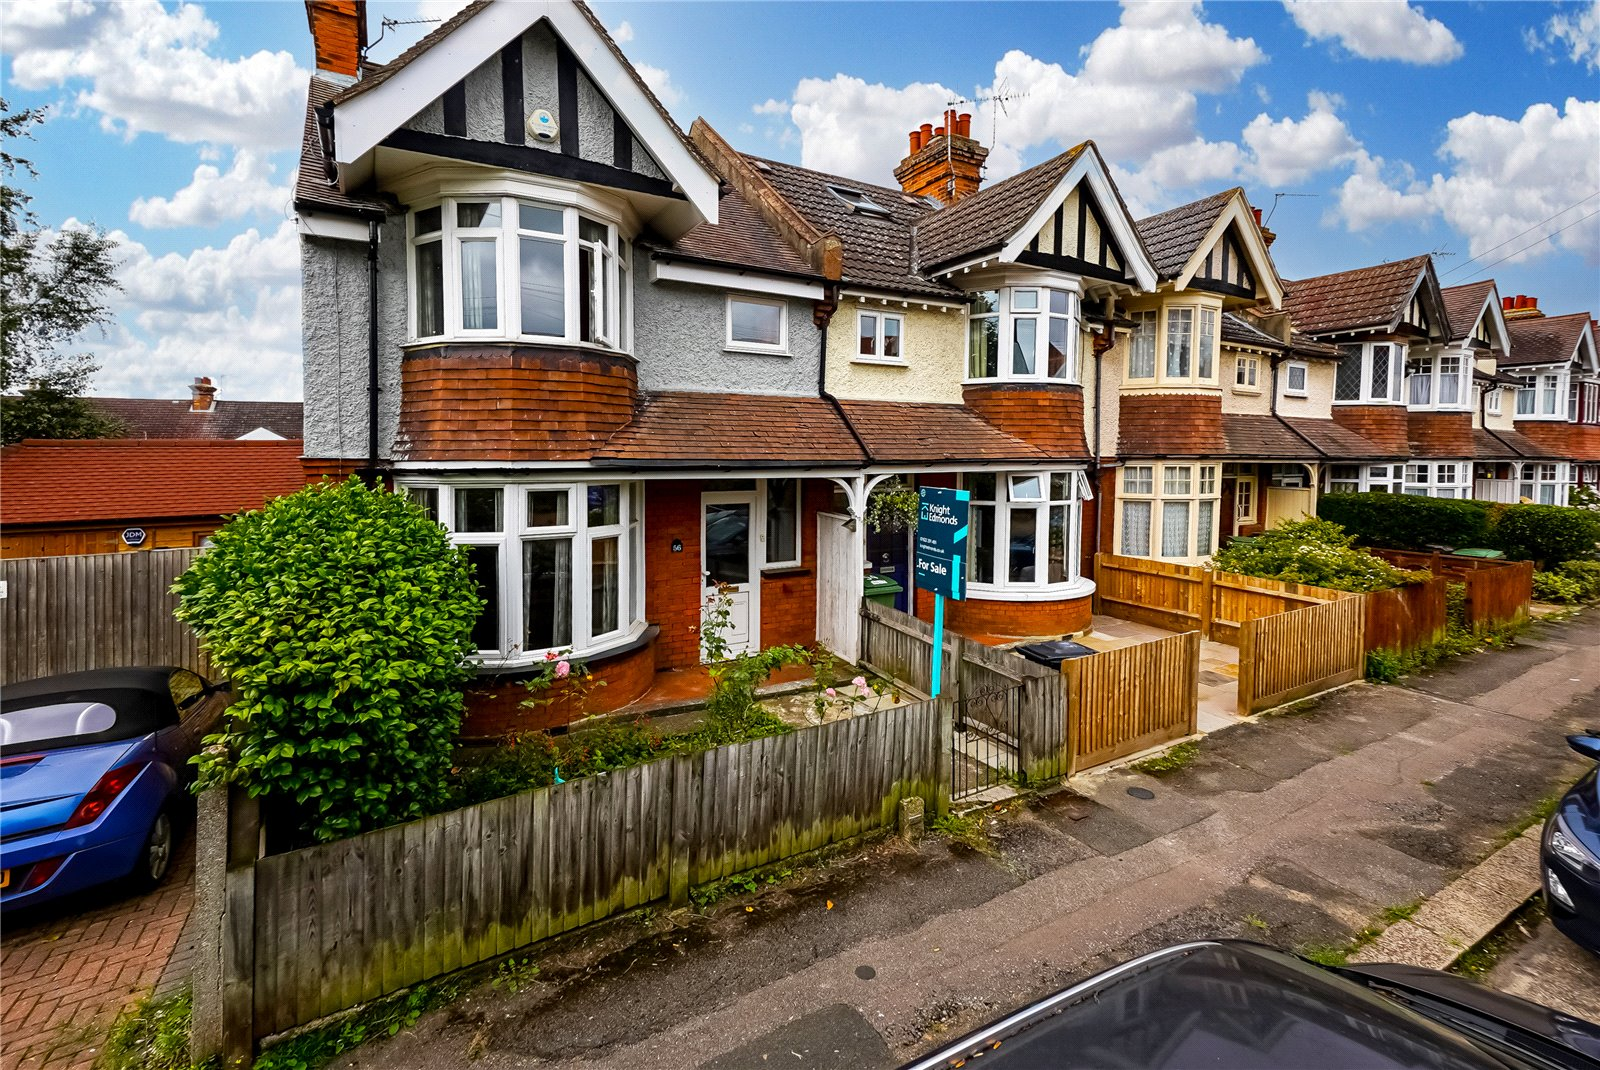 3 bed  for sale in Curzon Road, Maidstone, ME14